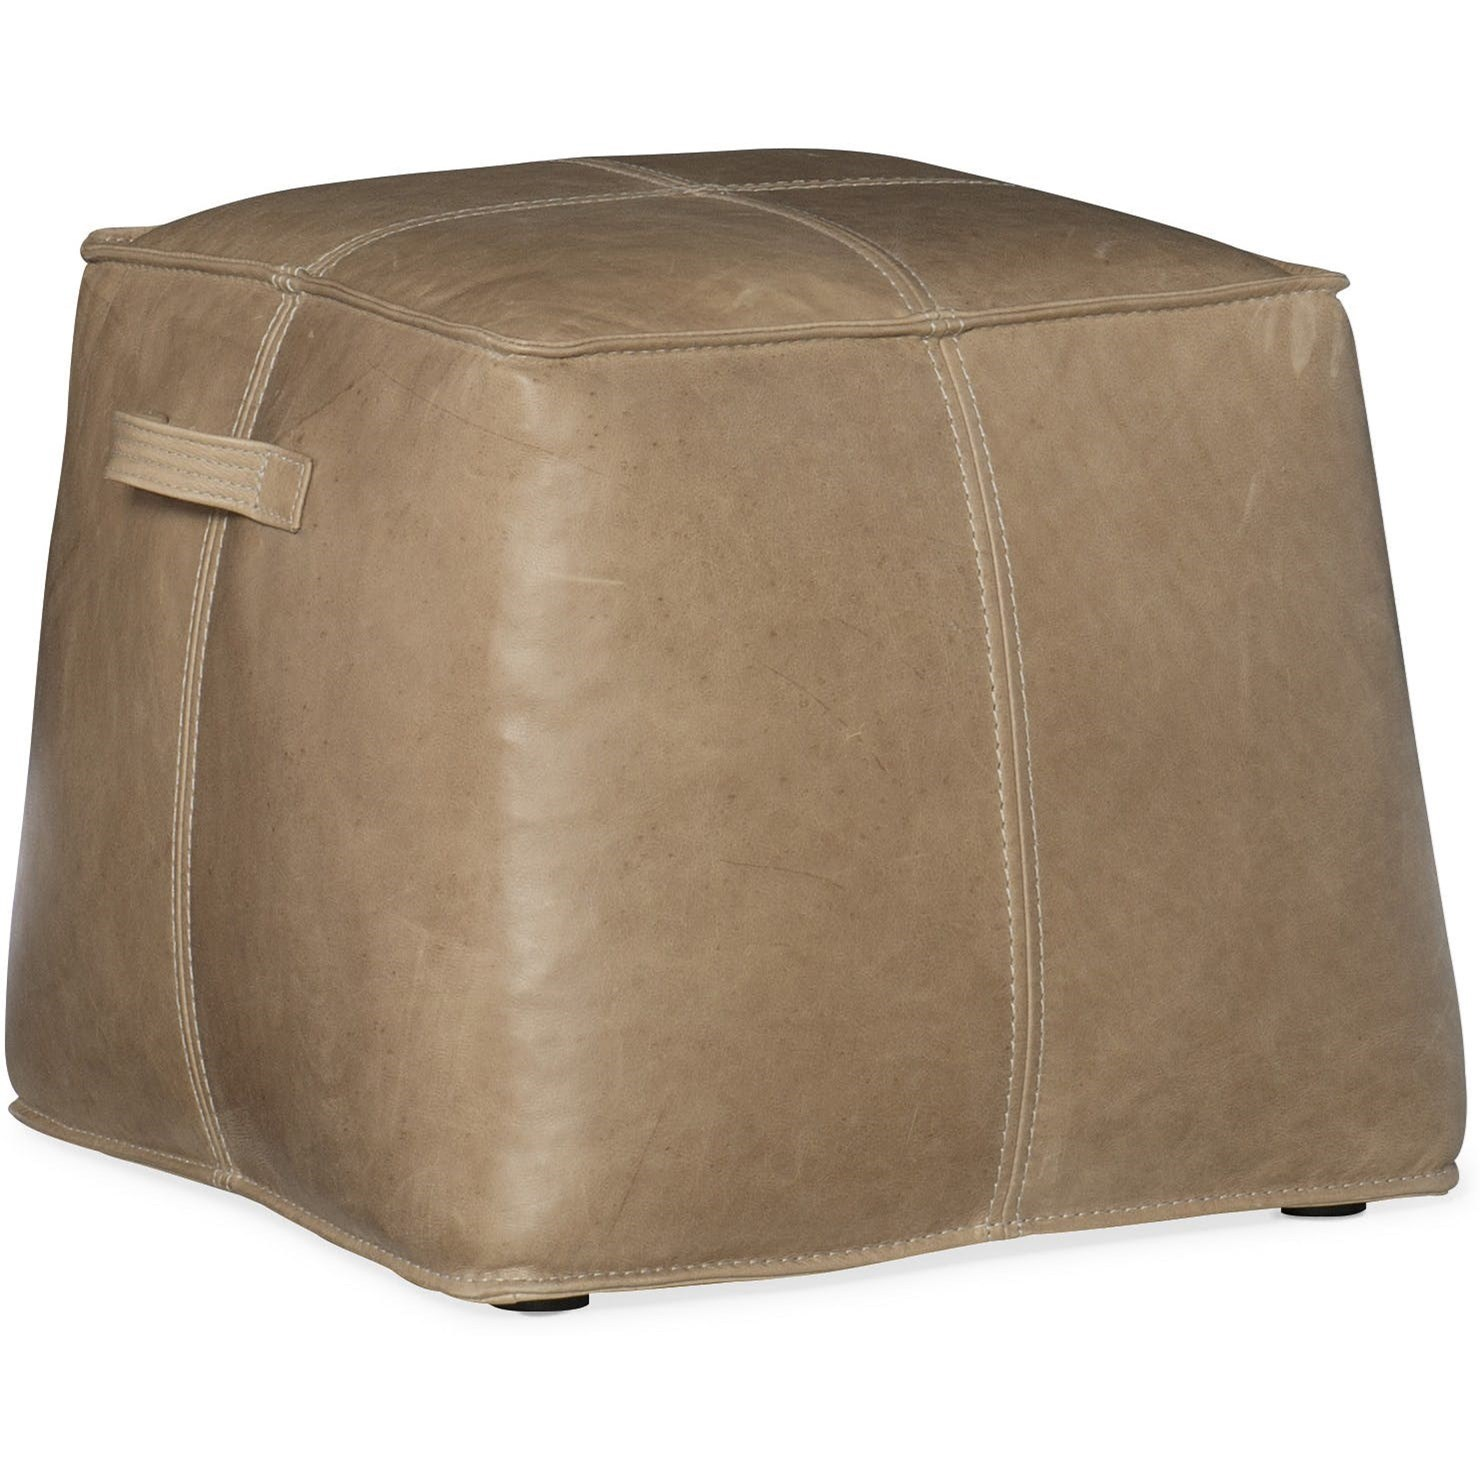 Cocktail Ottomans Dizzy Small Leather Ottoman by Hooker Furniture at Stoney Creek Furniture